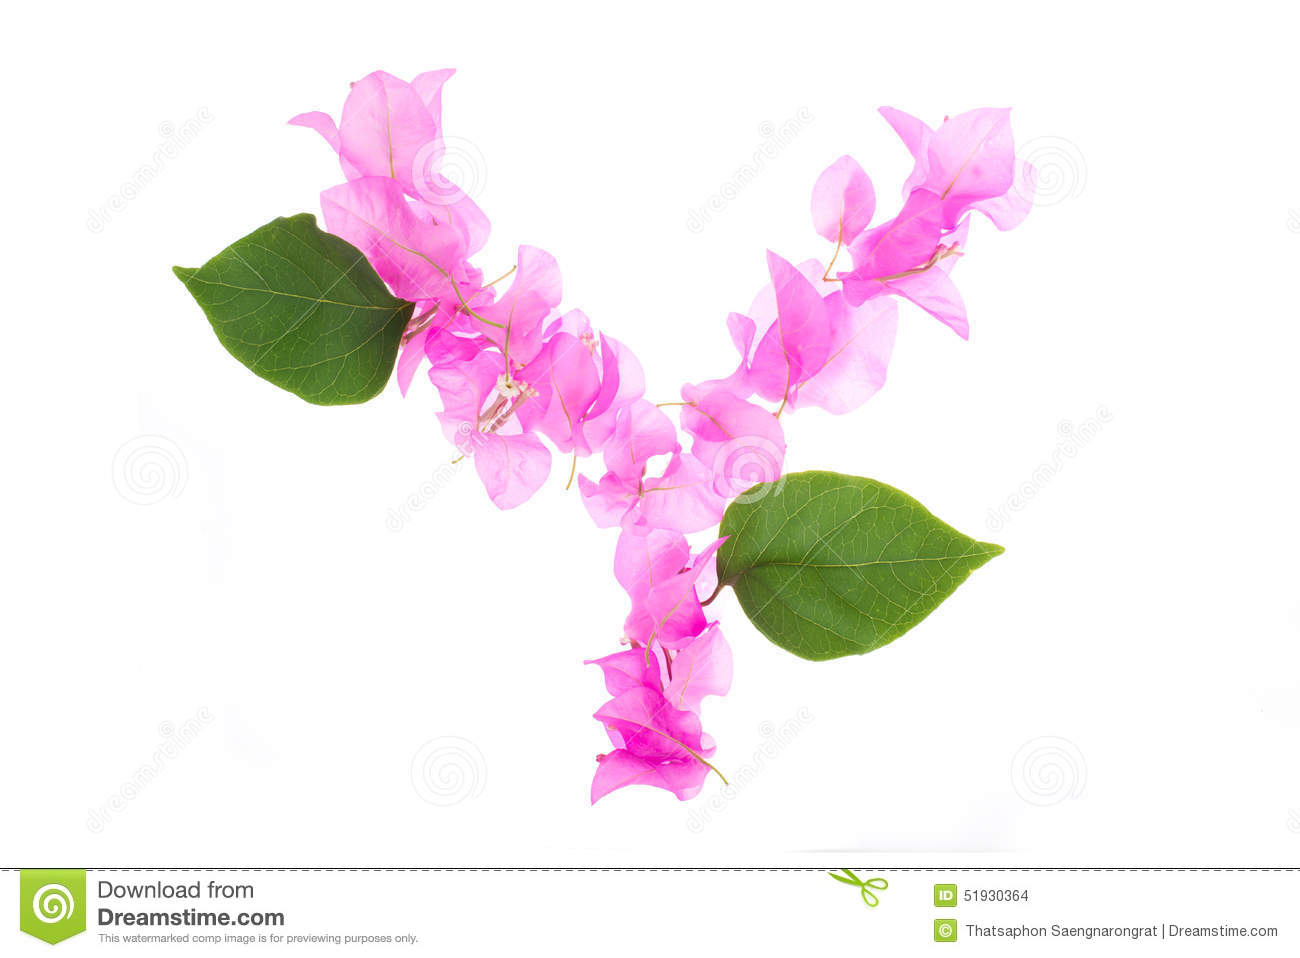 Bougainvillea flowers alphabet isolated on white background